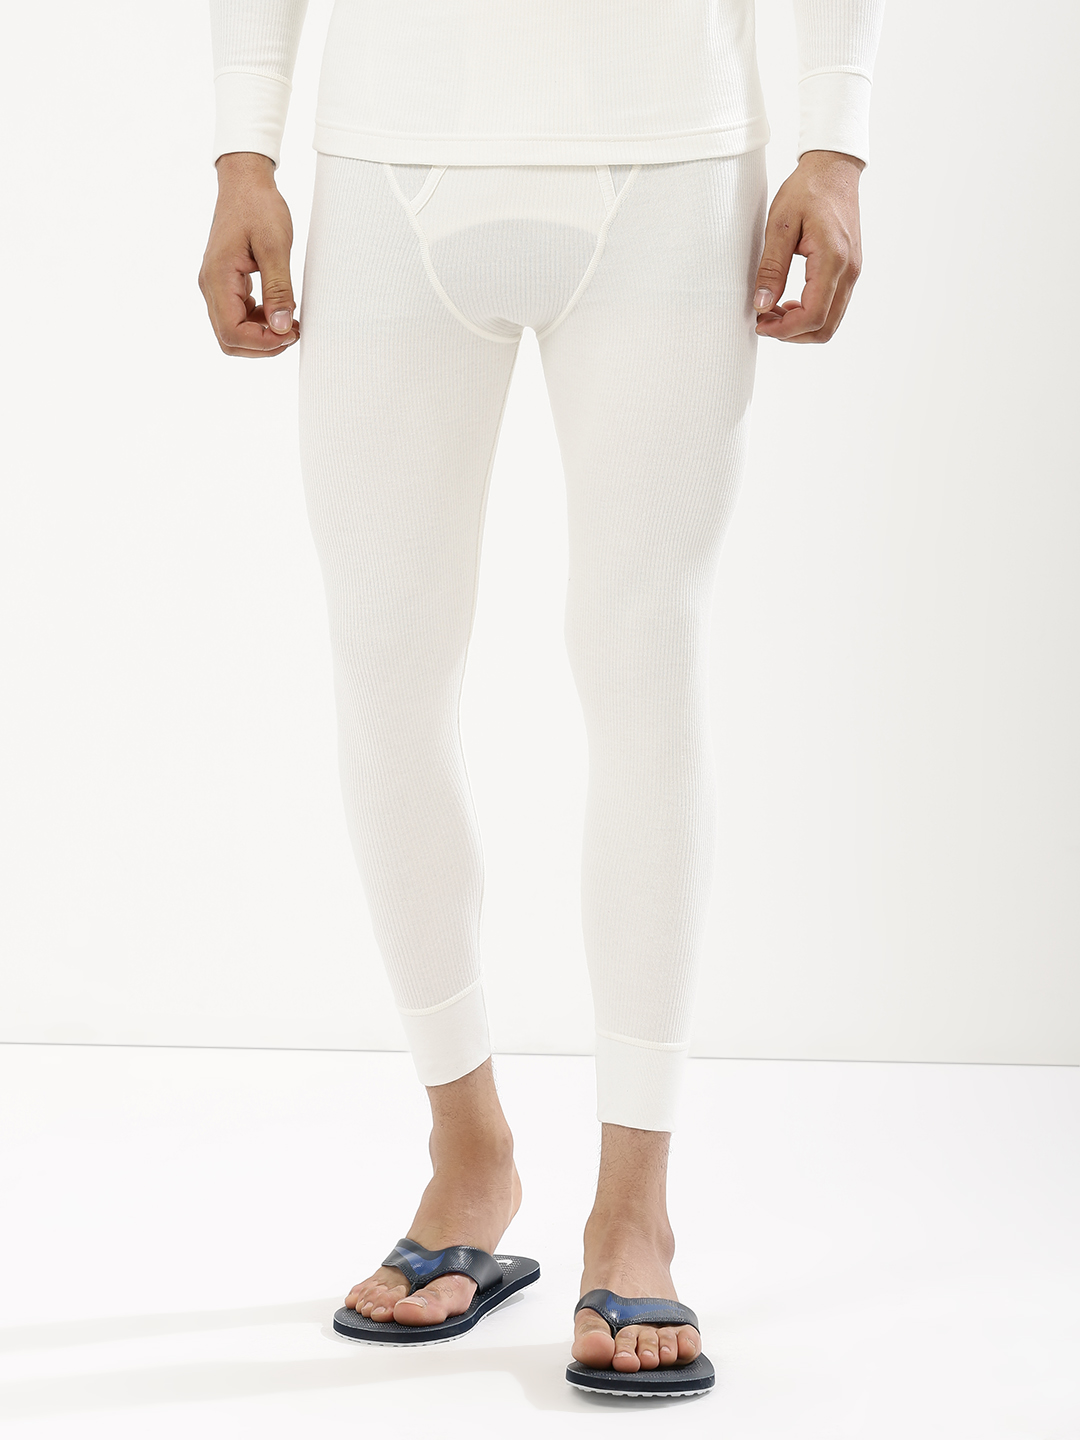 Jockey Off White Cuffed Hem Thermal Pants 1